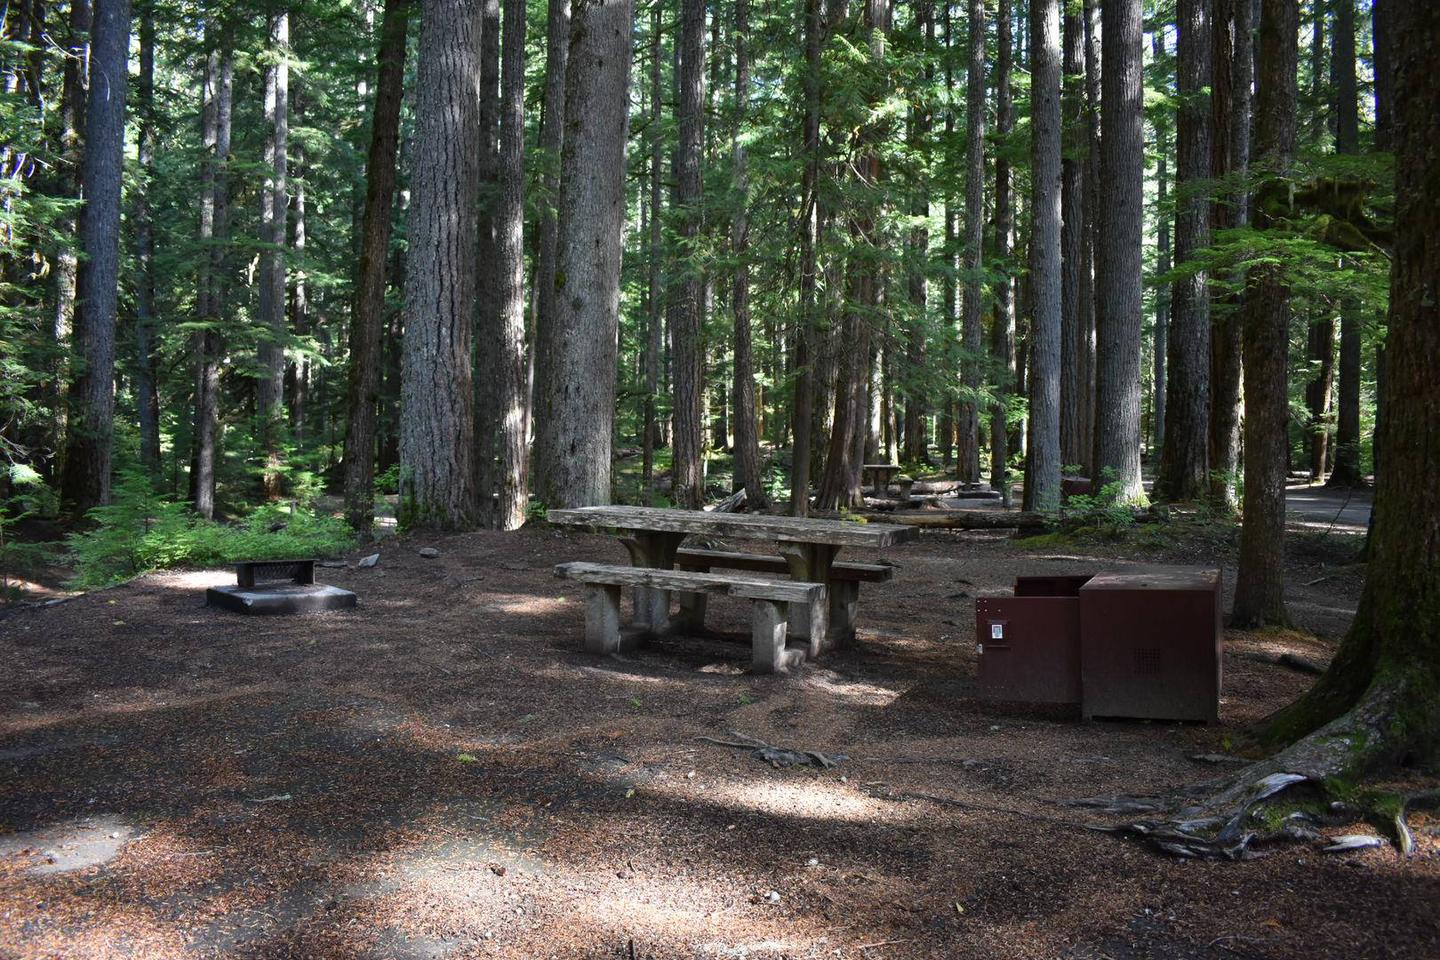 Ohanapecosh Campground - Site D023 AmenitiesCampers are provided with a picnic table, food storage box, and fire pit.